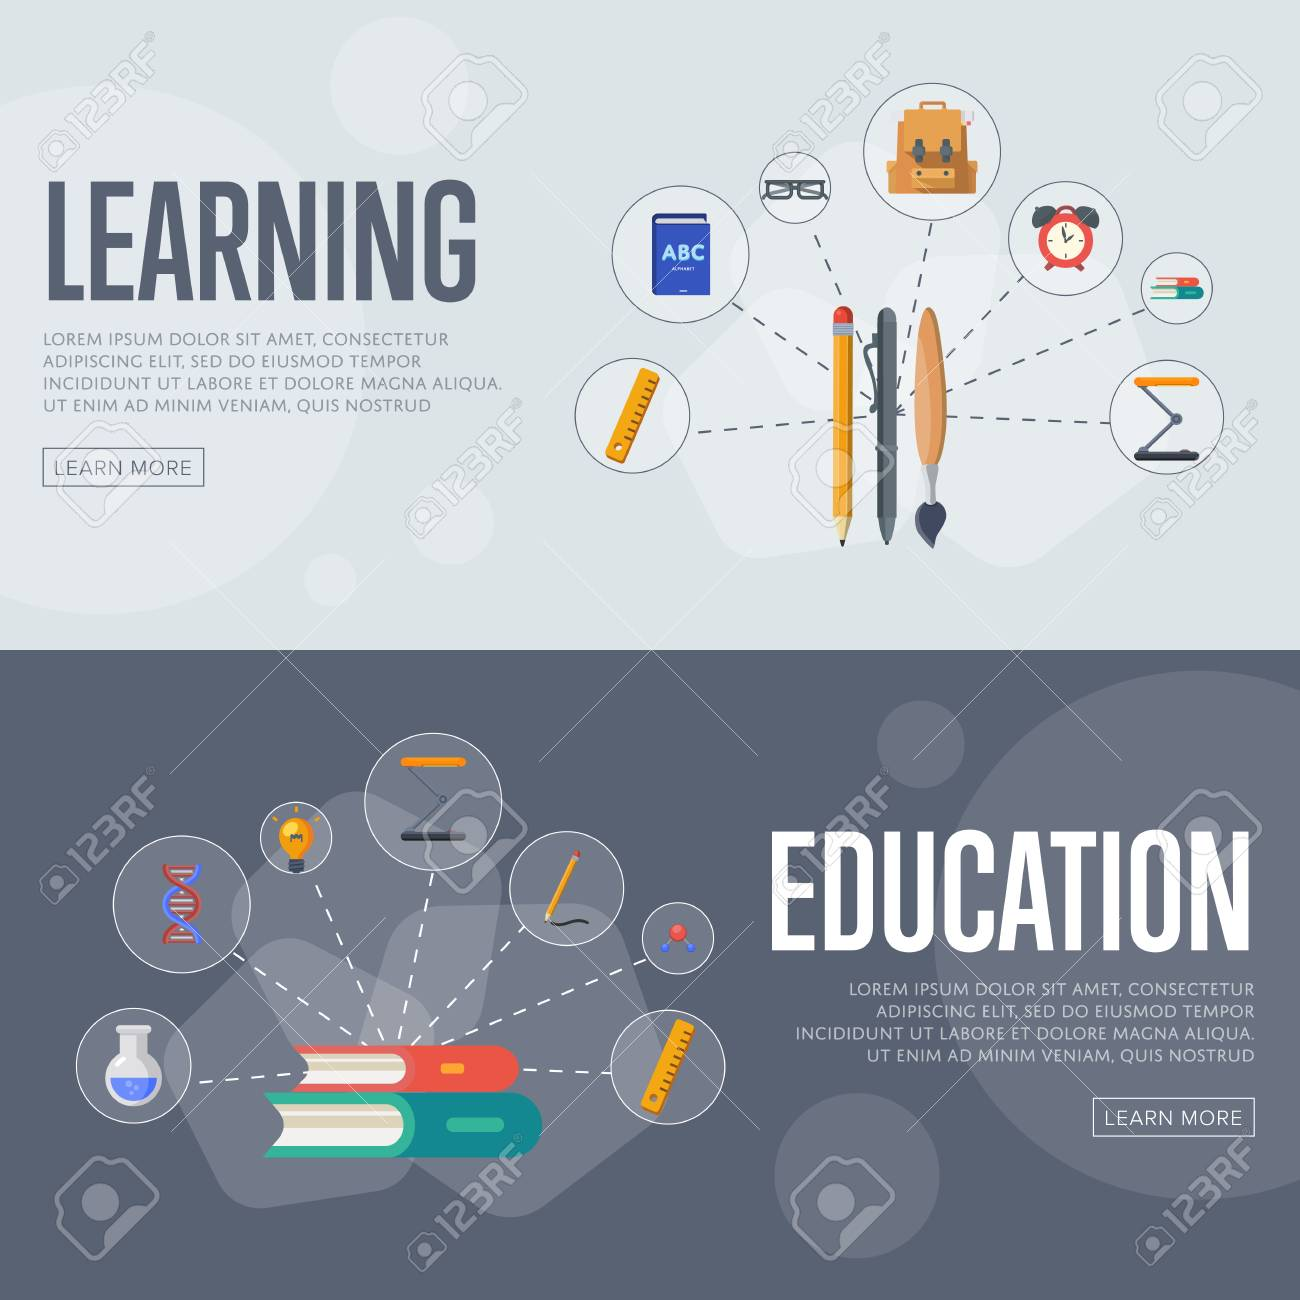 Banners Of Education And Learning Infographics Concept Icons Stock Photo Picture And Royalty Free Image Image 72981027